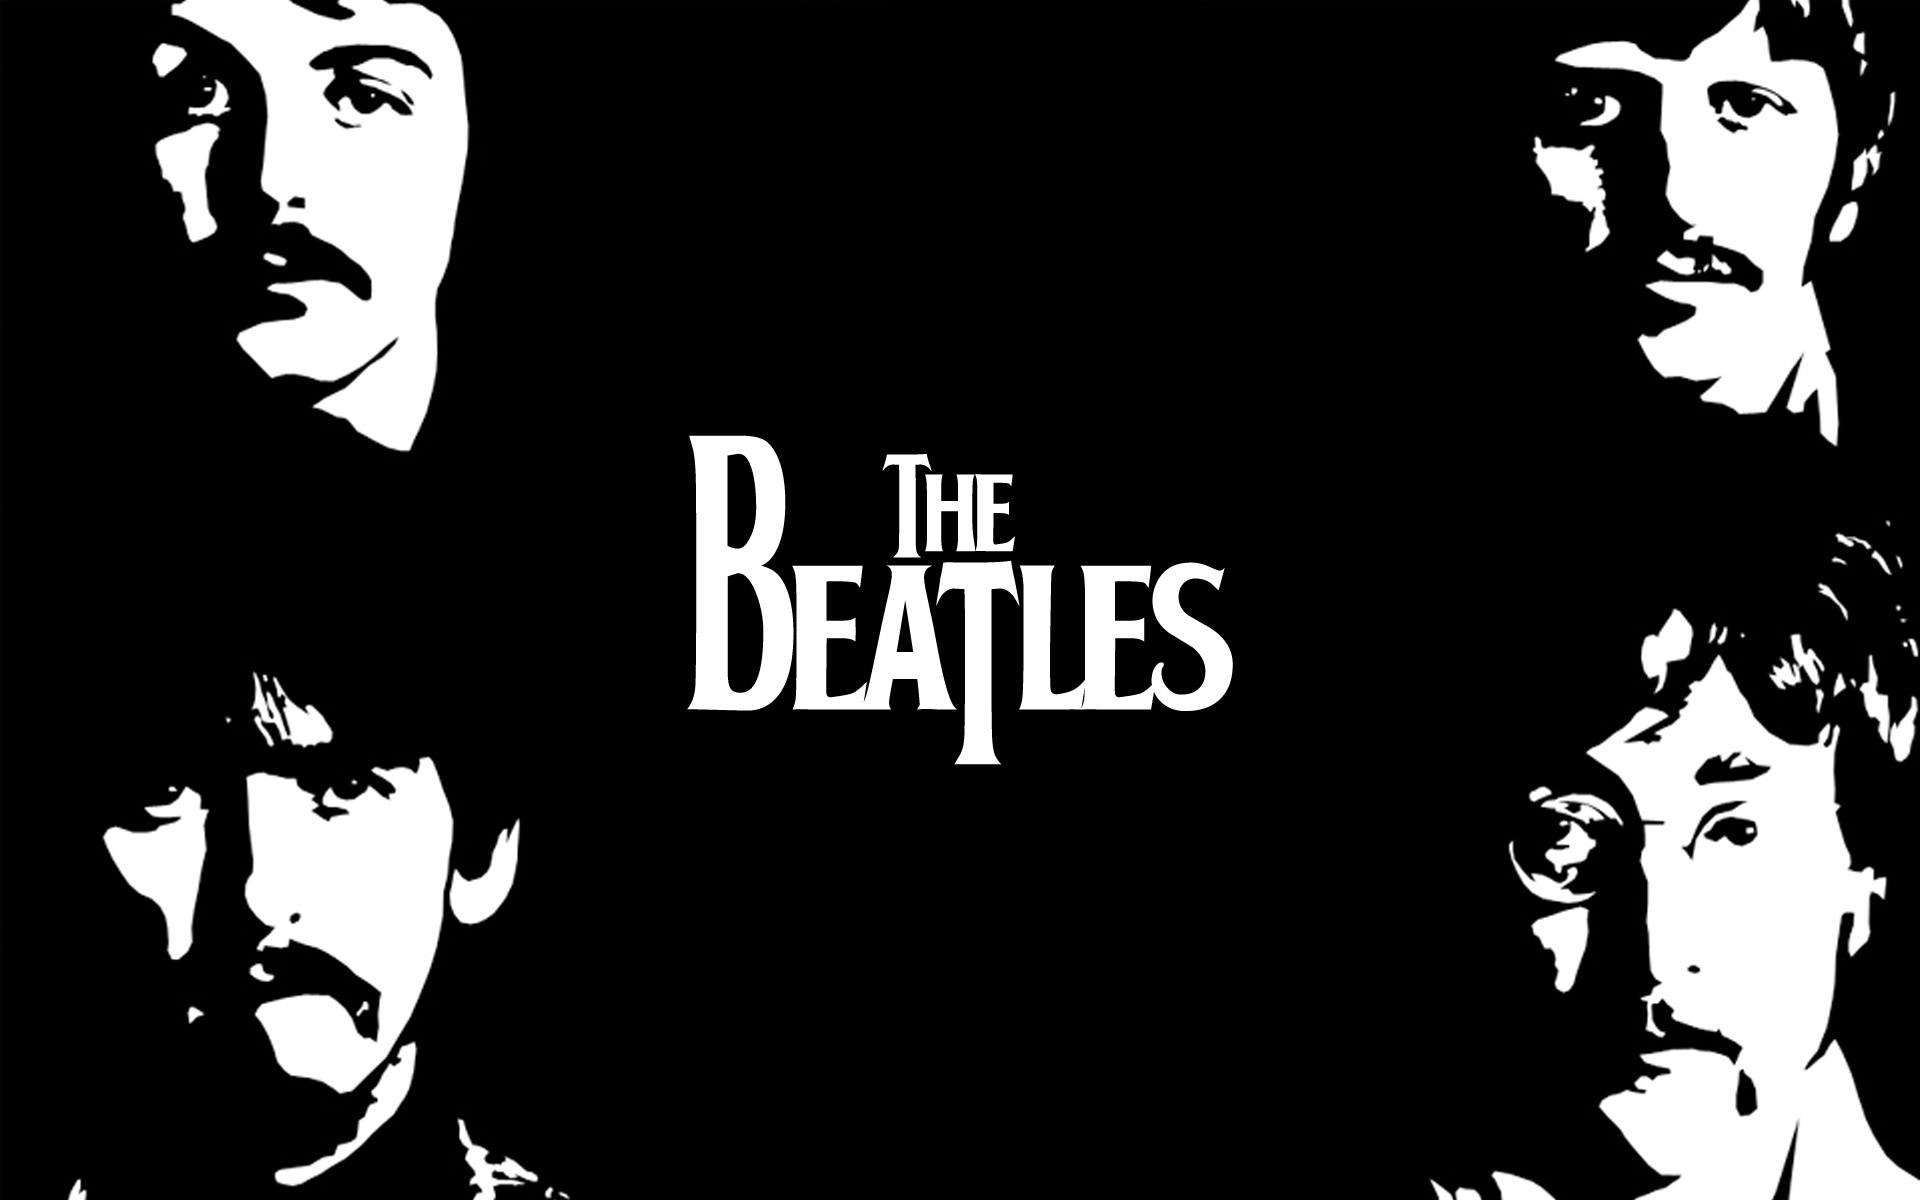 The beatles wallpaper 1600x1200 39165 the beatles voltagebd Choice Image